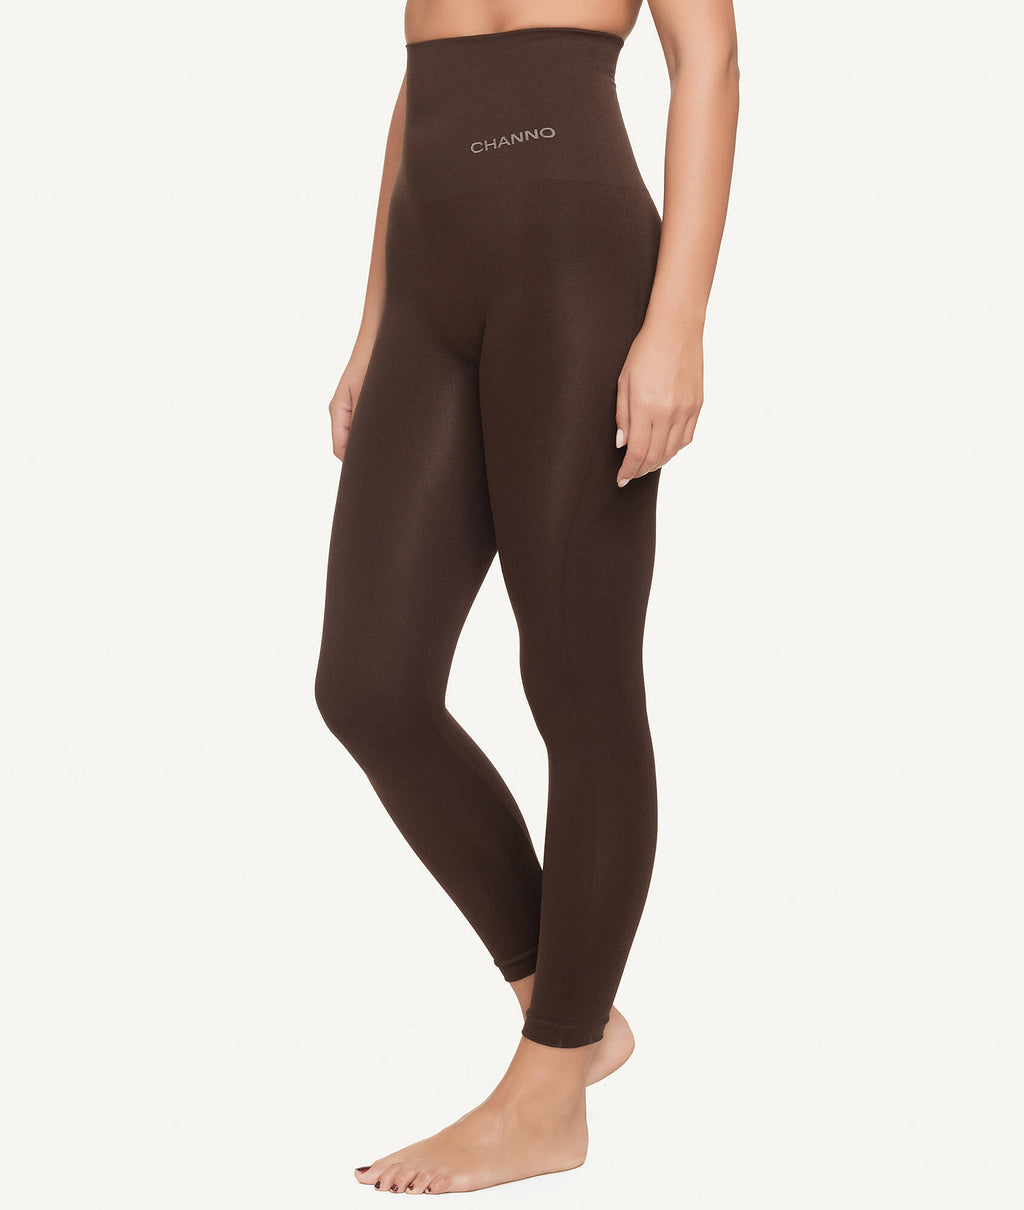 Legging reductor abdomen sin costuras lateral